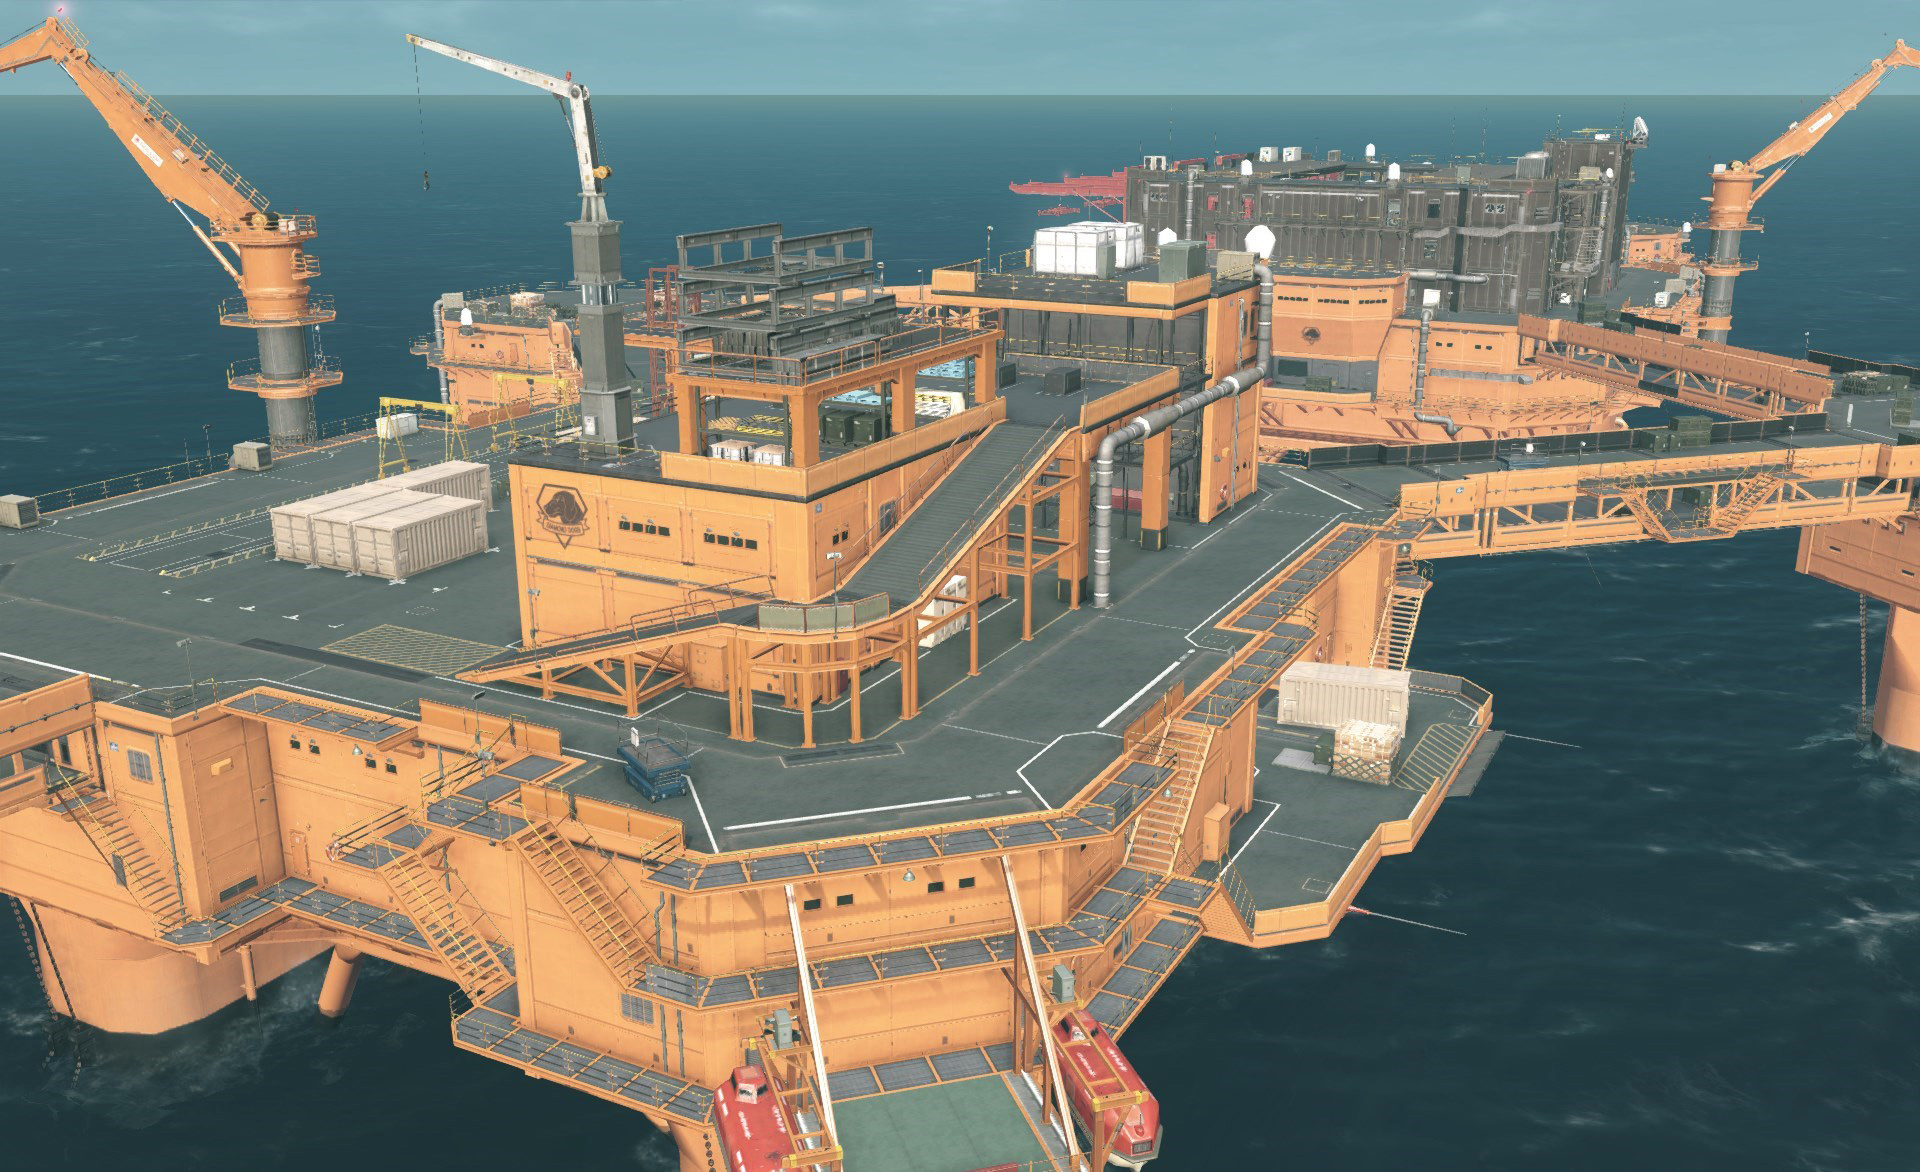 Metal-Gear-Online-Map-Coral-Complex-2